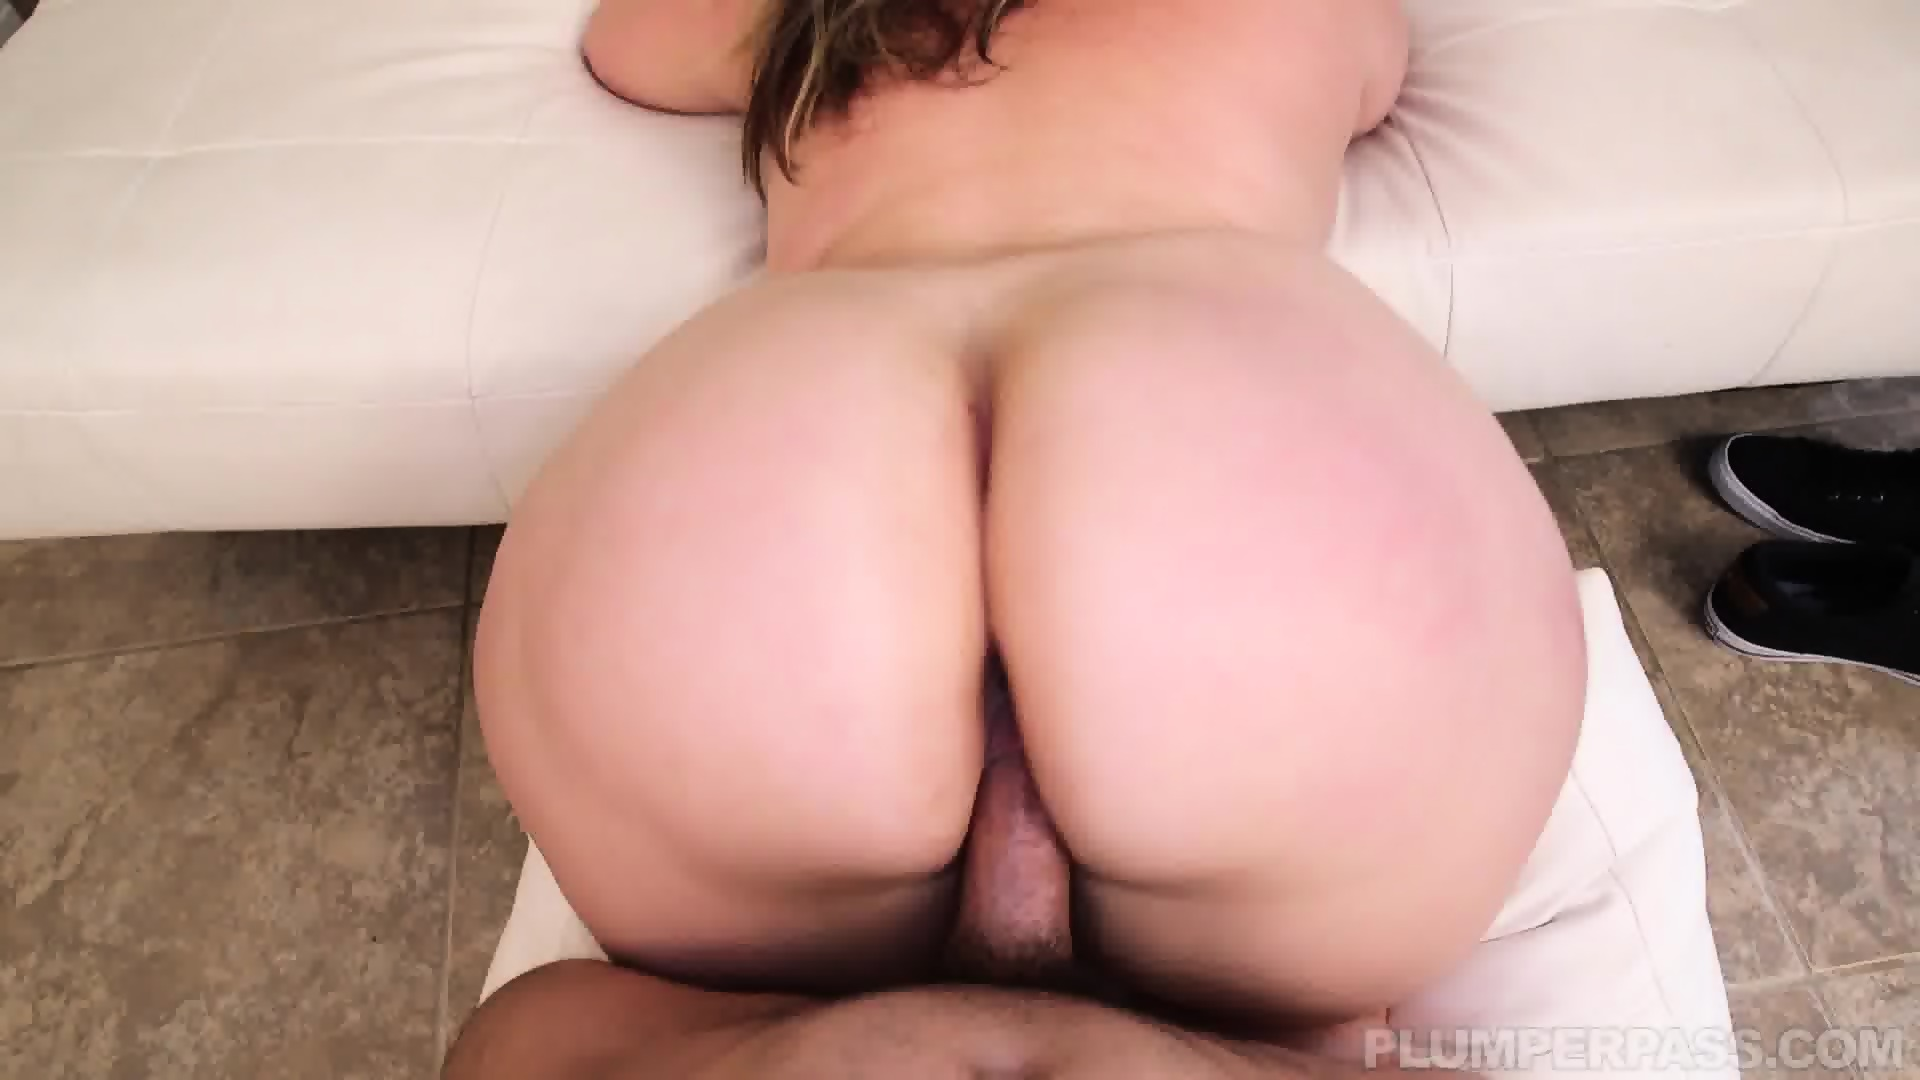 Big booty pawg mazzaratie monica banged by latino stud - 2 part 2